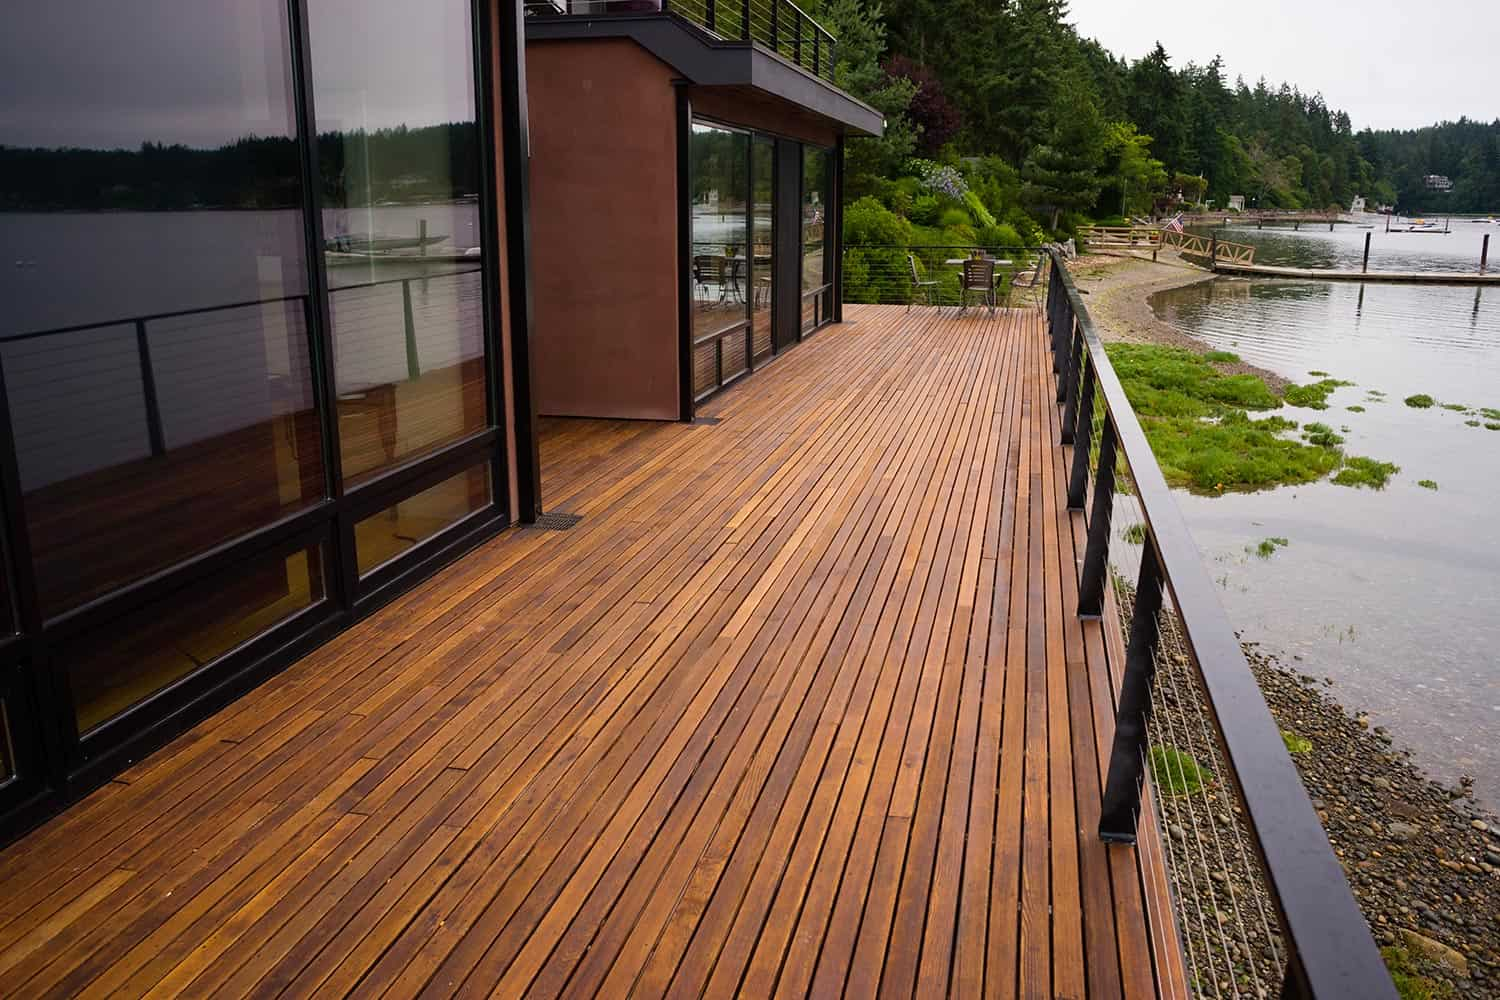 Wood plank deck patio on a contemporary waterfront home